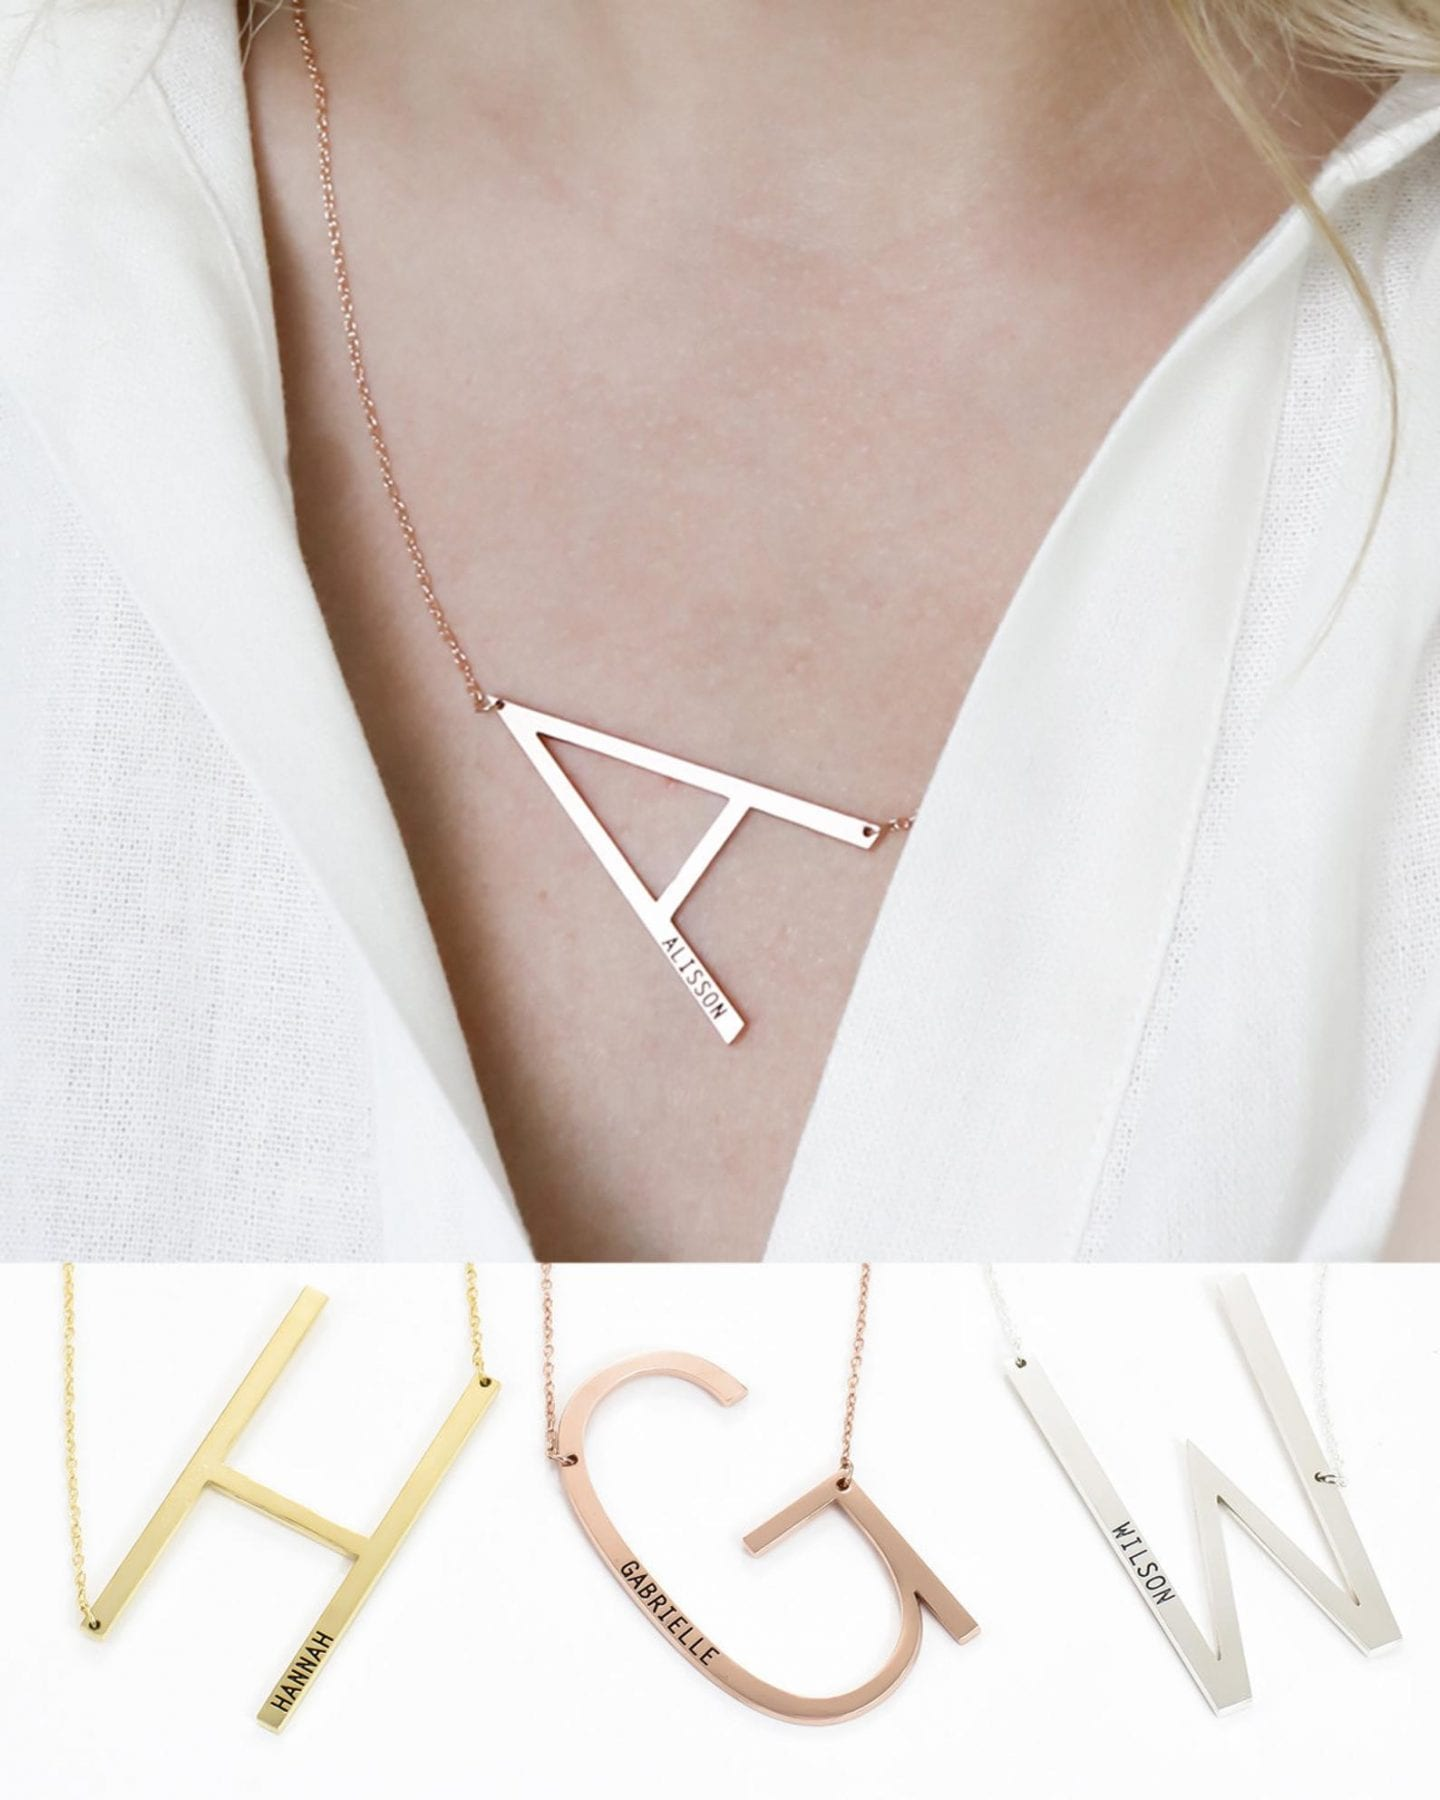 Initial Jewelry by popular San Francisco fashion blog, Just Add Glam: image of a sideways initial necklace.